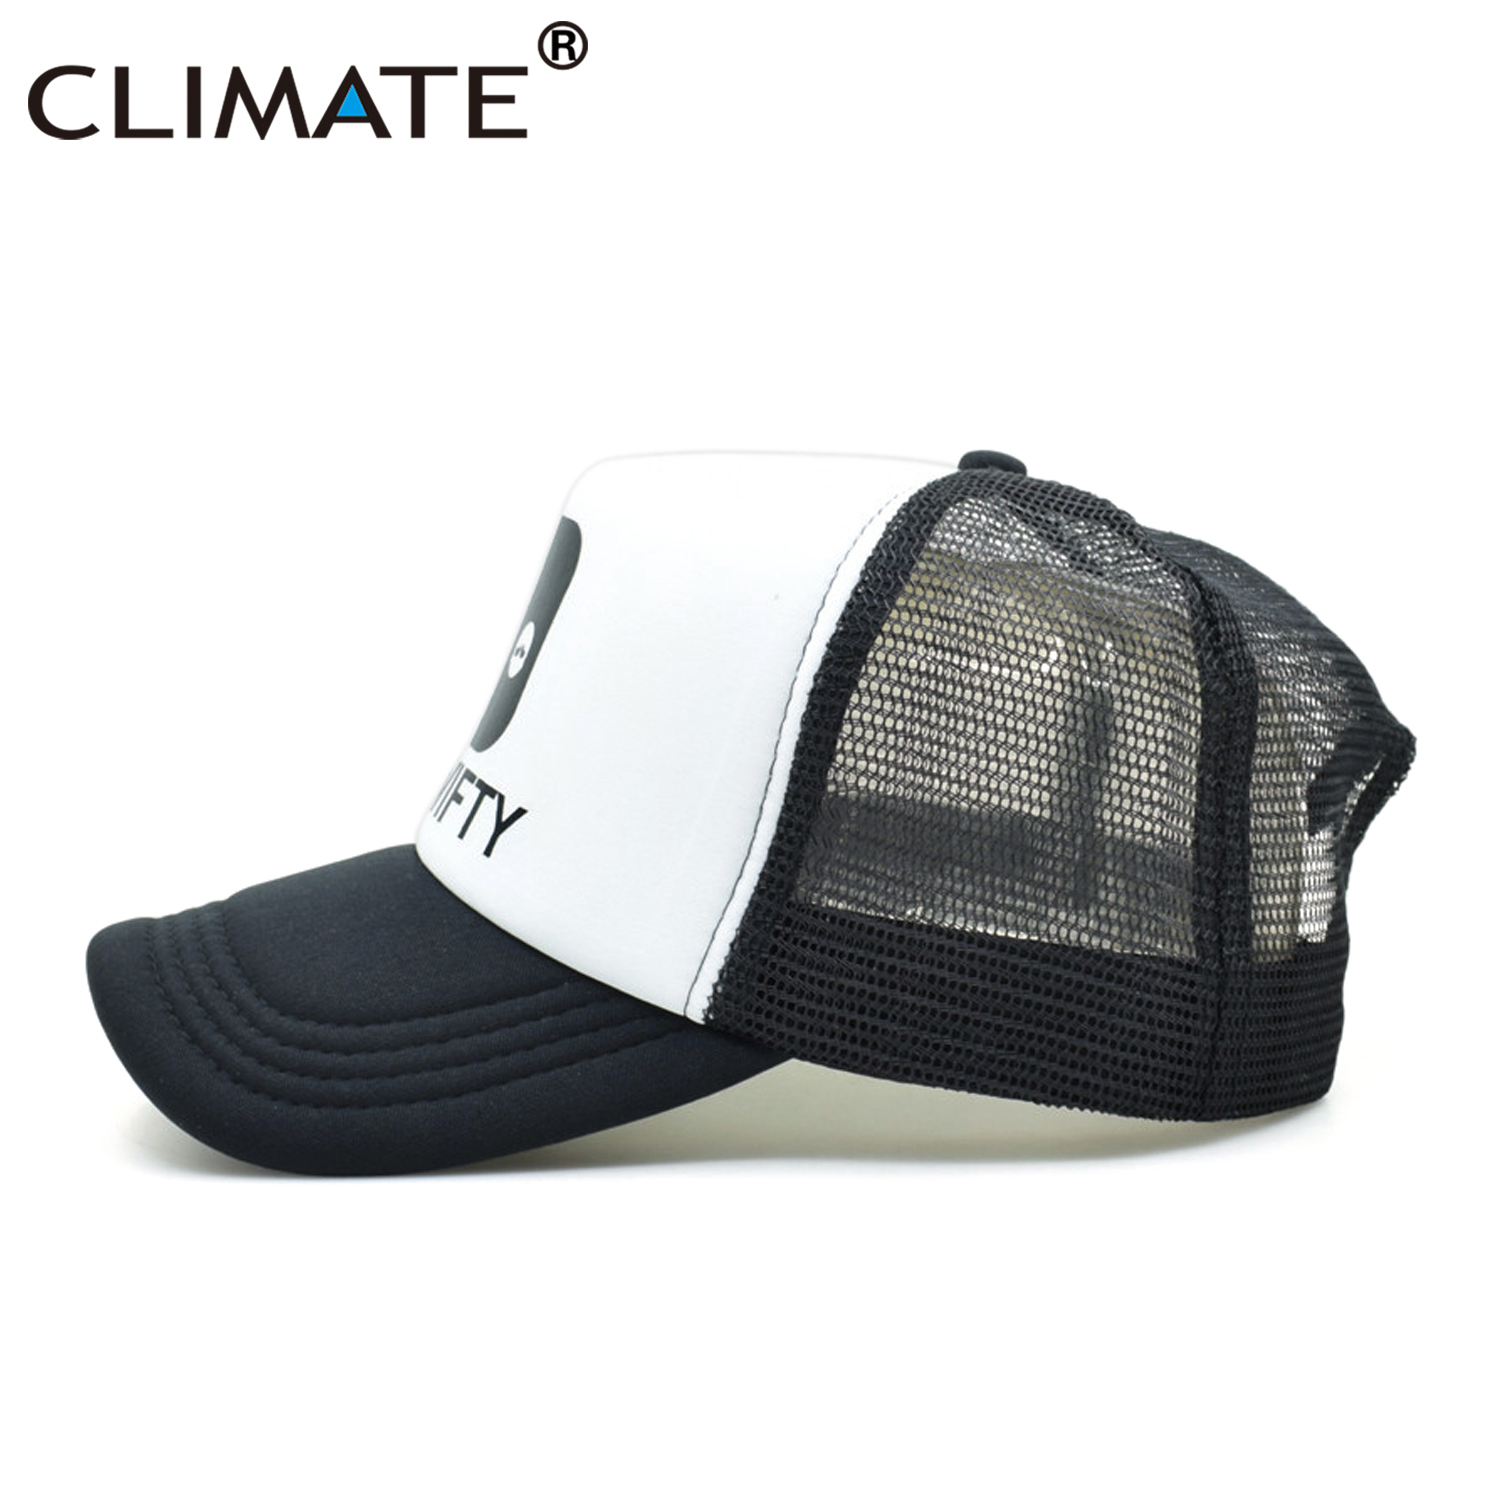 4101aa9c9a5 CLIMATE Men Women Rick and Morty Caps Get Schwifty Summer Trucker Caps Cool  Funny Rick Morty Baseball Mesh Net Cool Caps Hat-in Baseball Caps from  Apparel ...